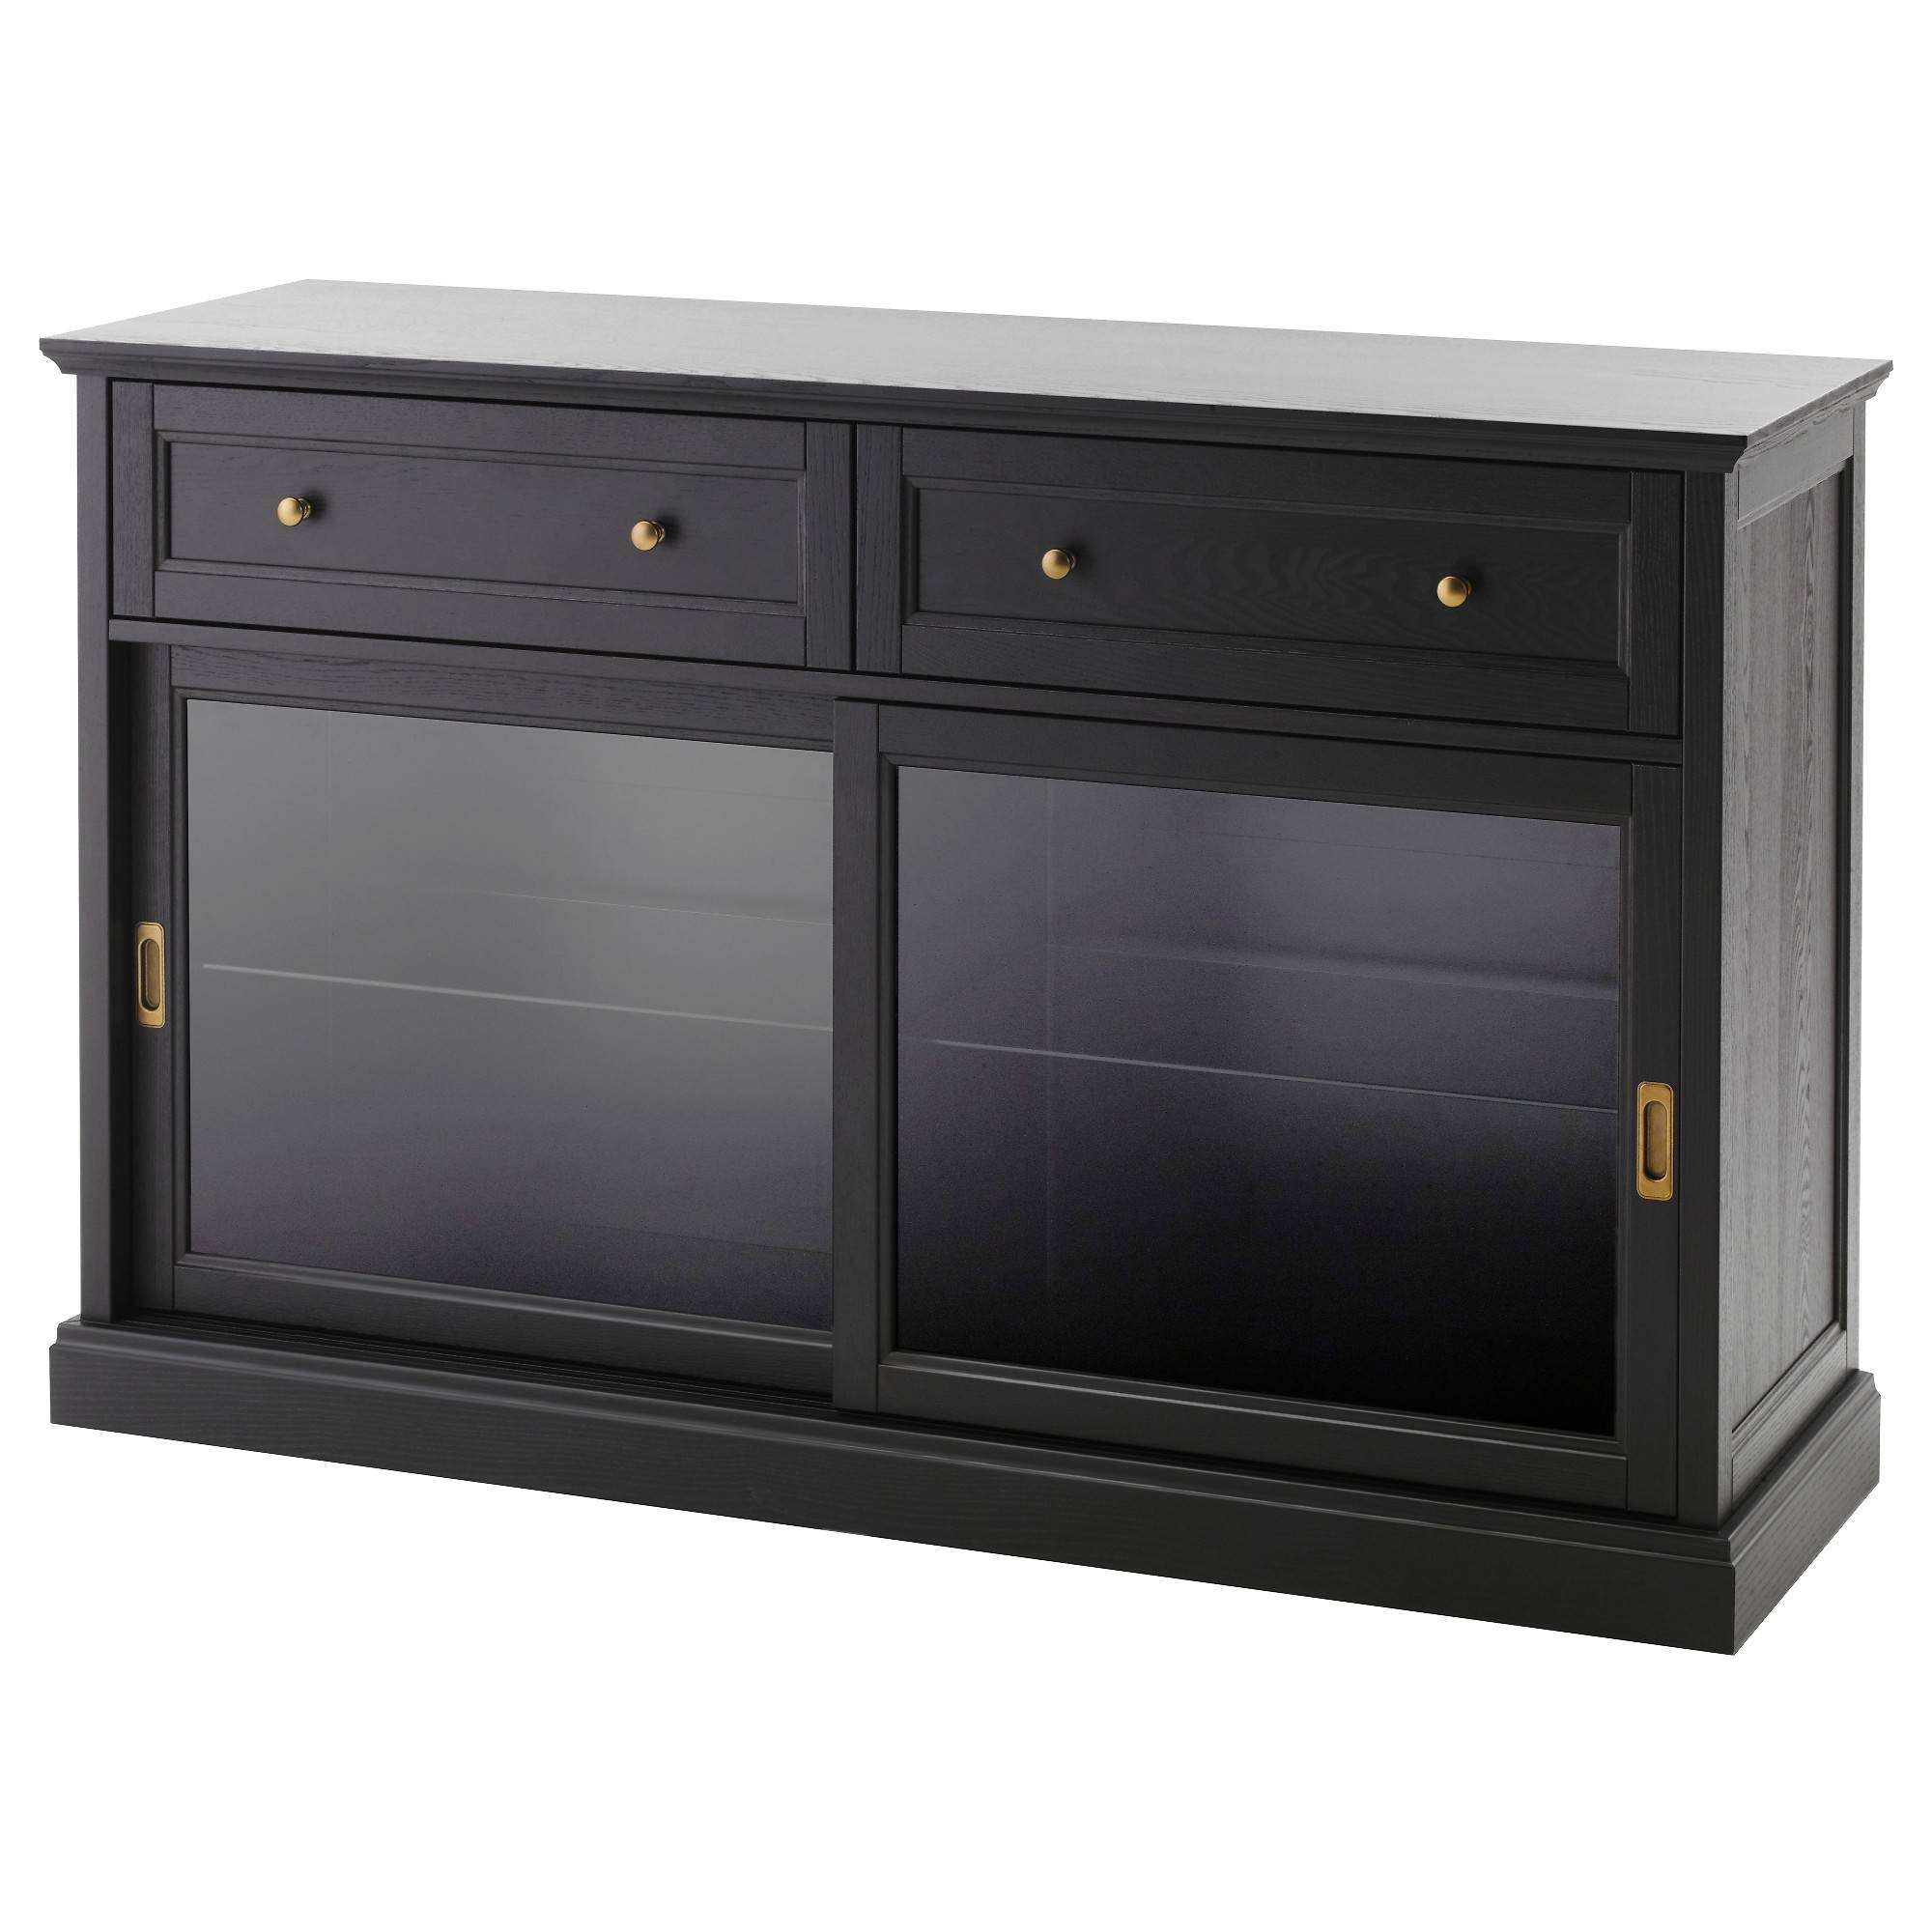 Buffet Tables & Sideboards - Ikea pertaining to Narrow Sideboards (Image 4 of 30)